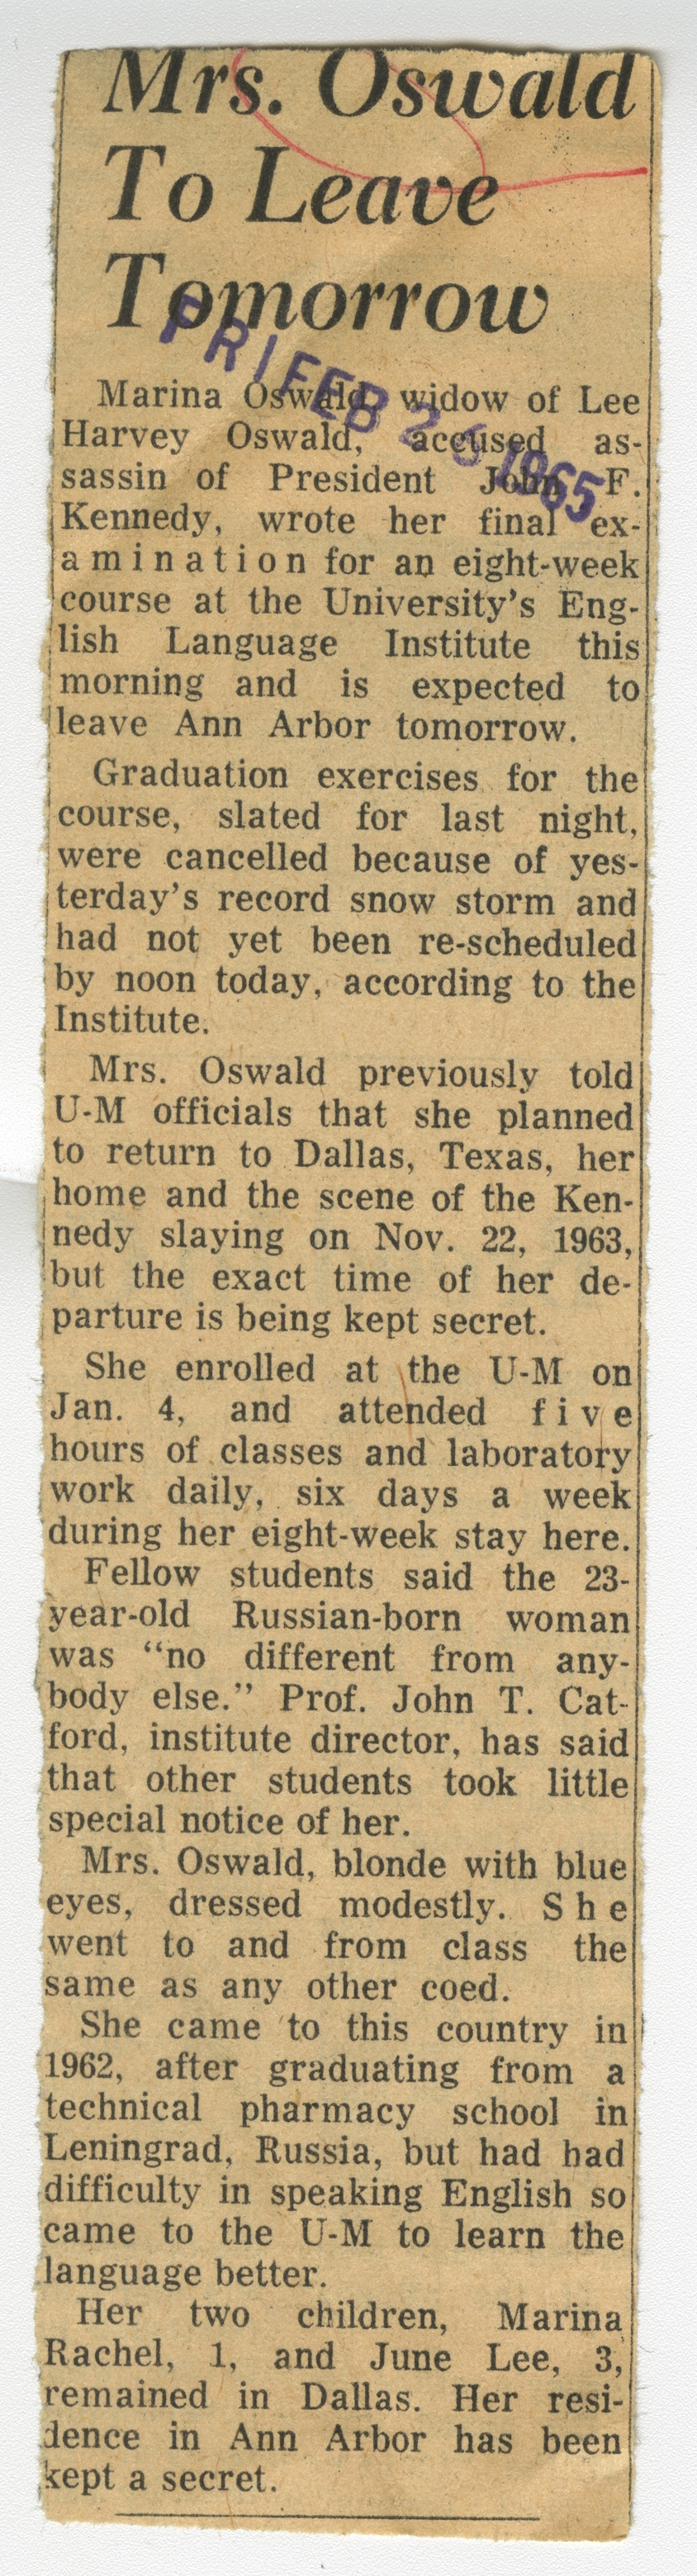 Mrs. Oswald To Leave Tomorrow image